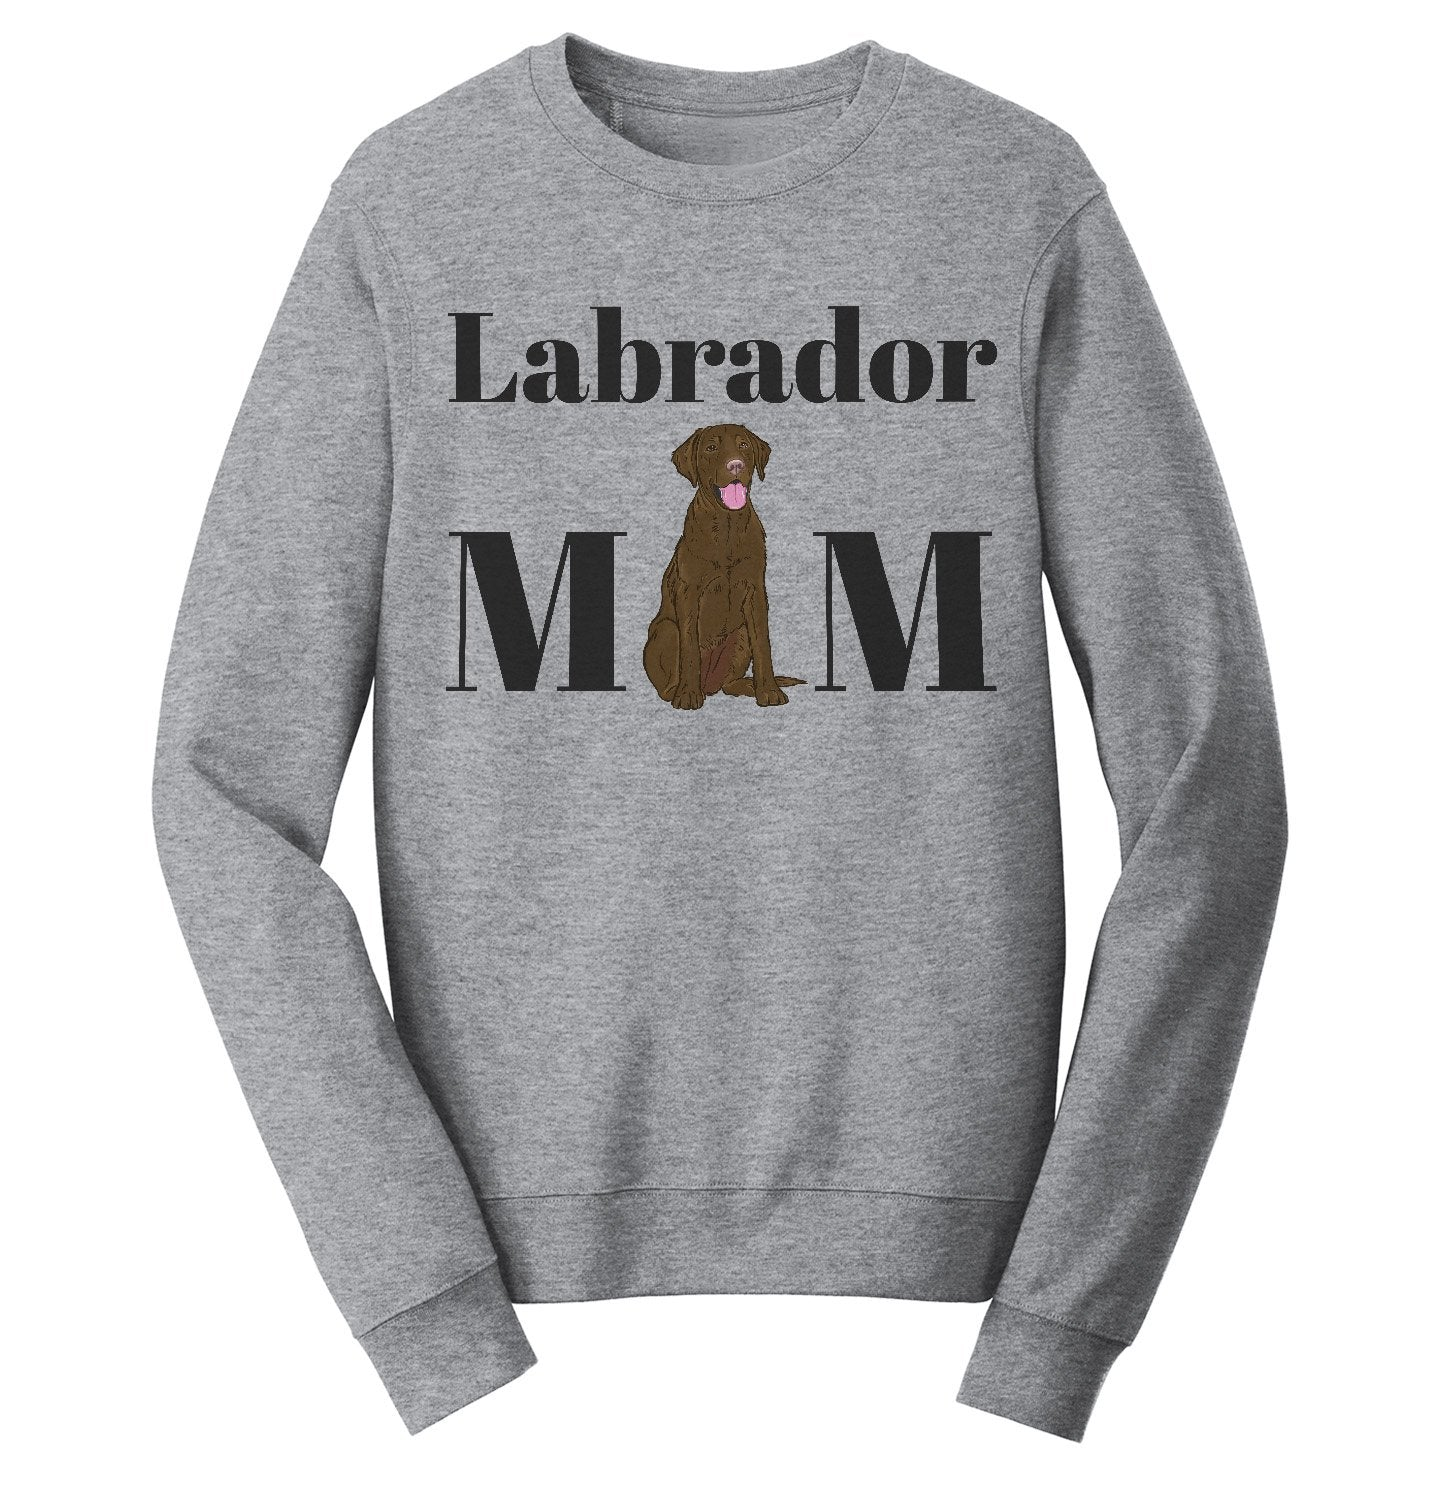 Labradors.com - Chocolate Labrador Mom Illustration - Adult Unisex Crewneck Sweatshirt